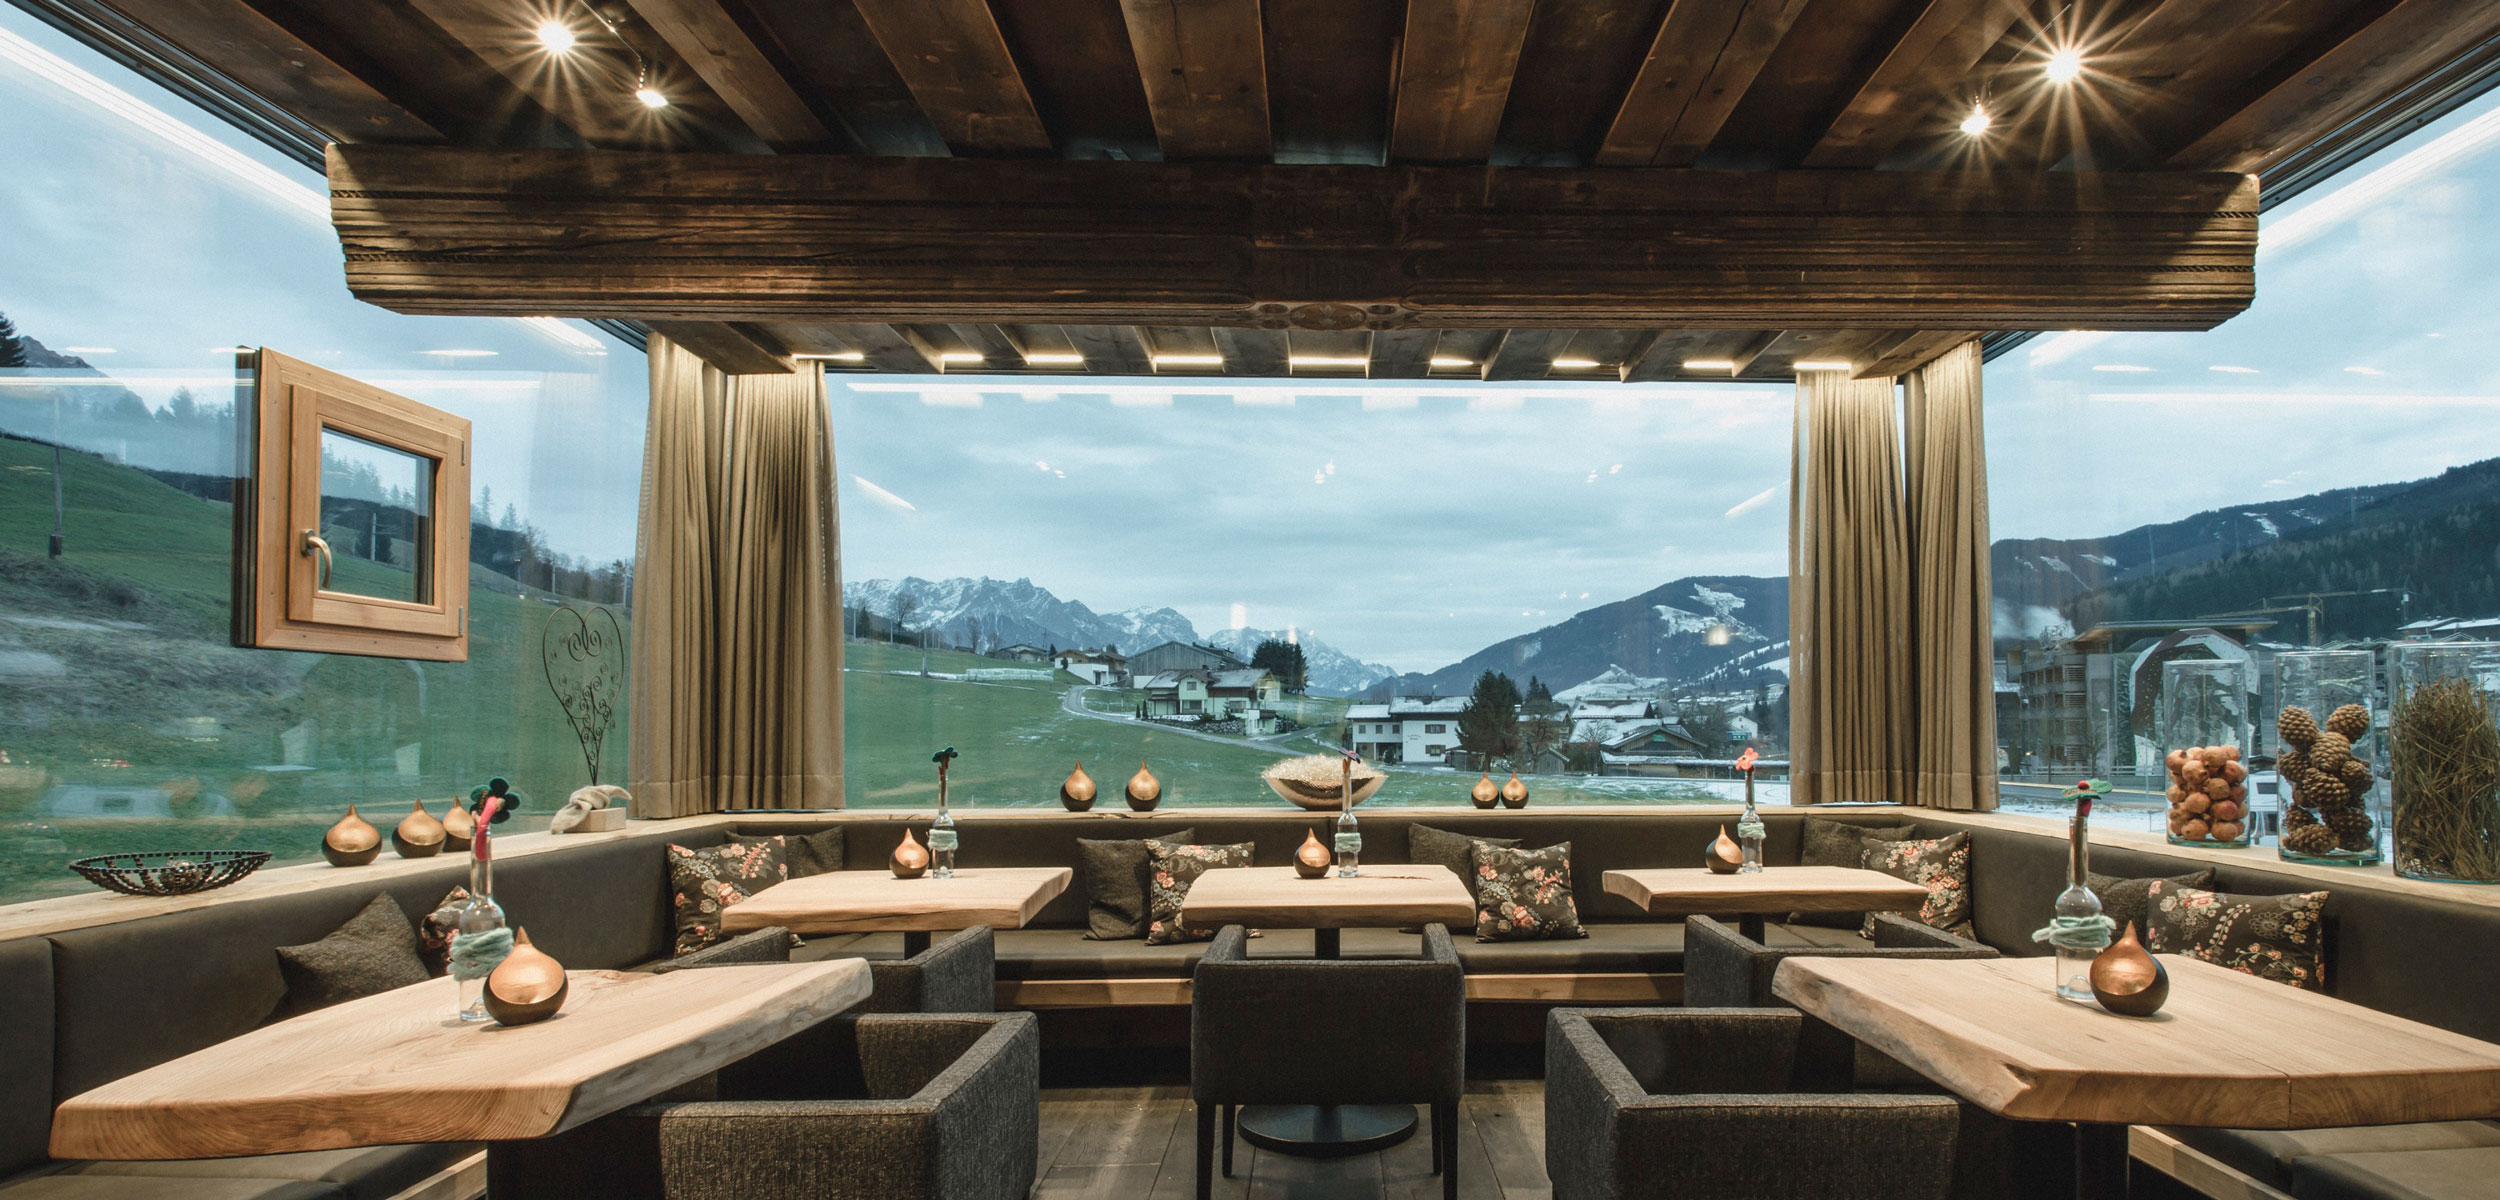 6 leistbare designhotels in sterreich maxima for Design hotel oesterreich